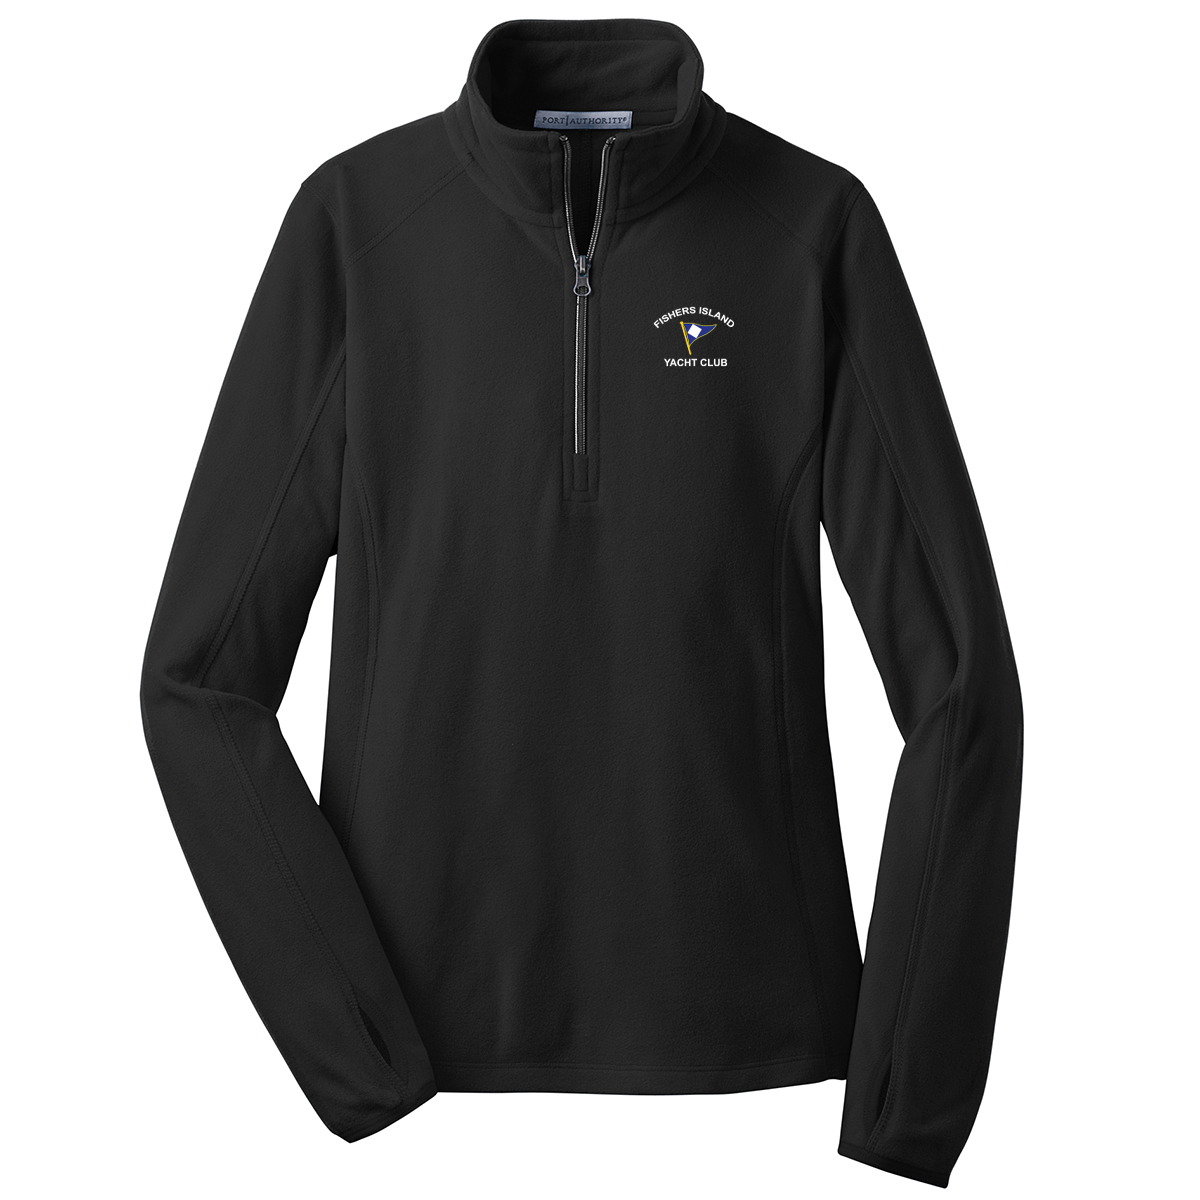 Fishers Island Yacht Club - Women's Fleece Pullover